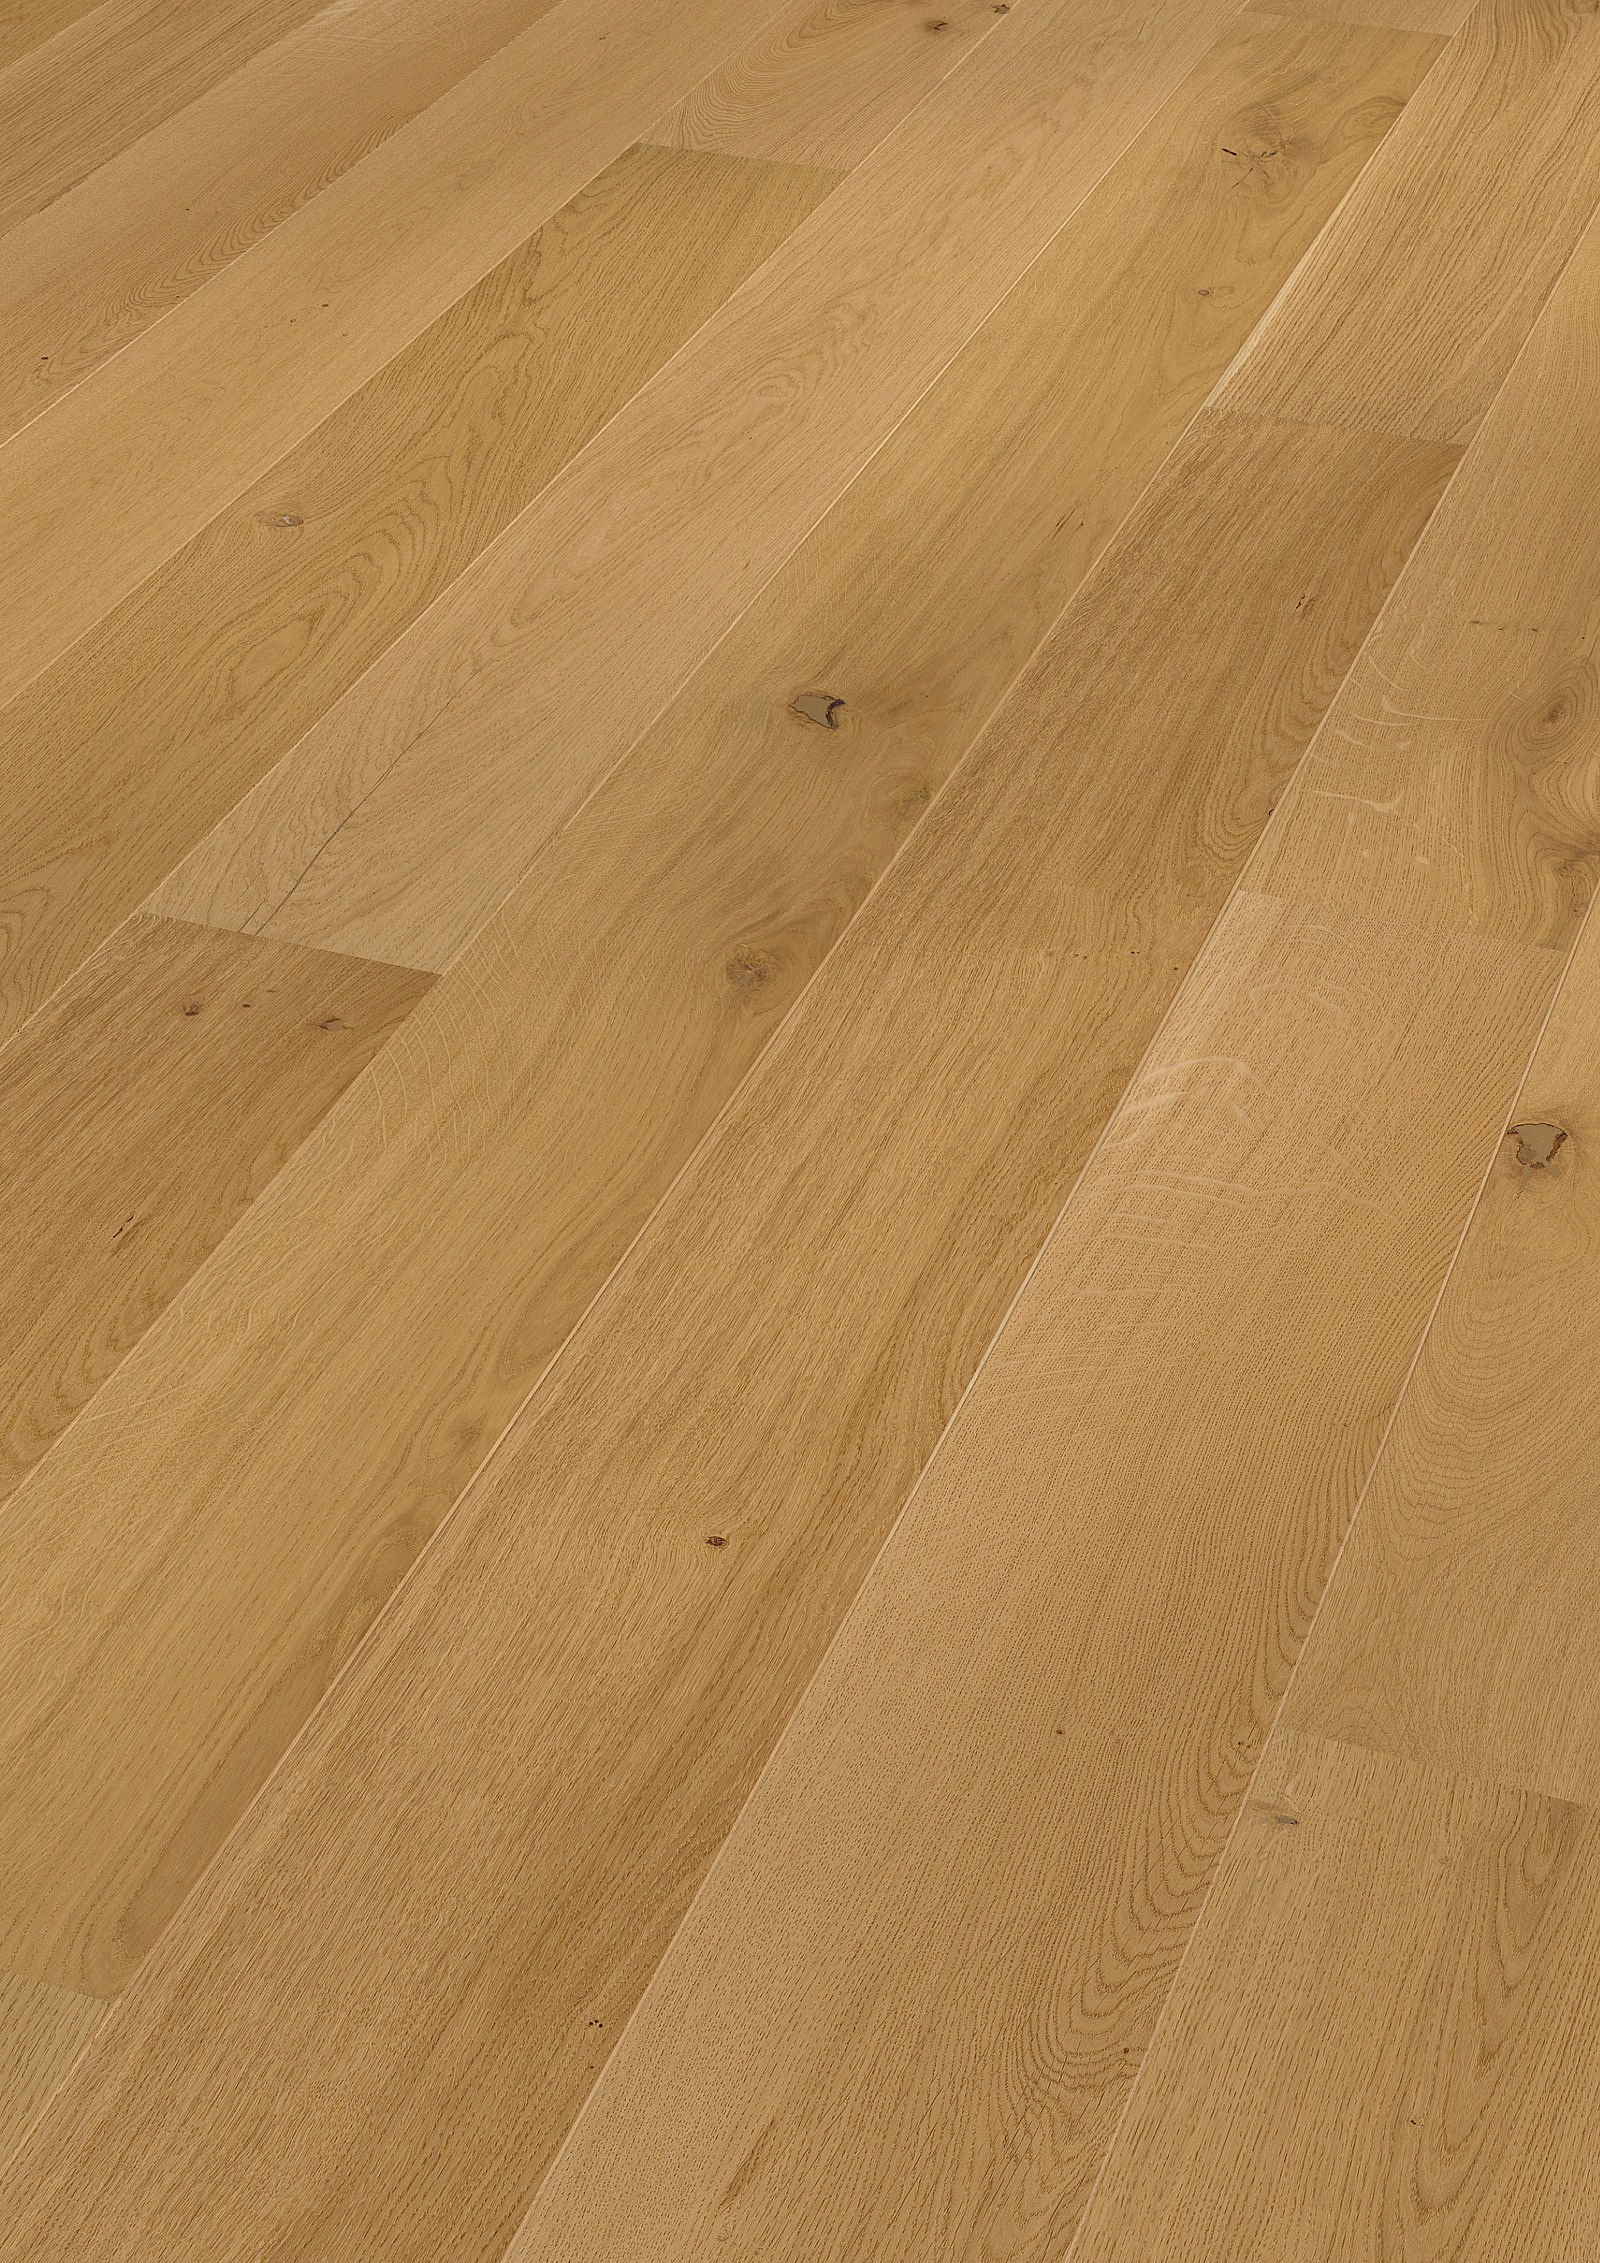 Long Plank Oak German engineered flooring Brushed and Oiled 180mm – patented click system – London Stock